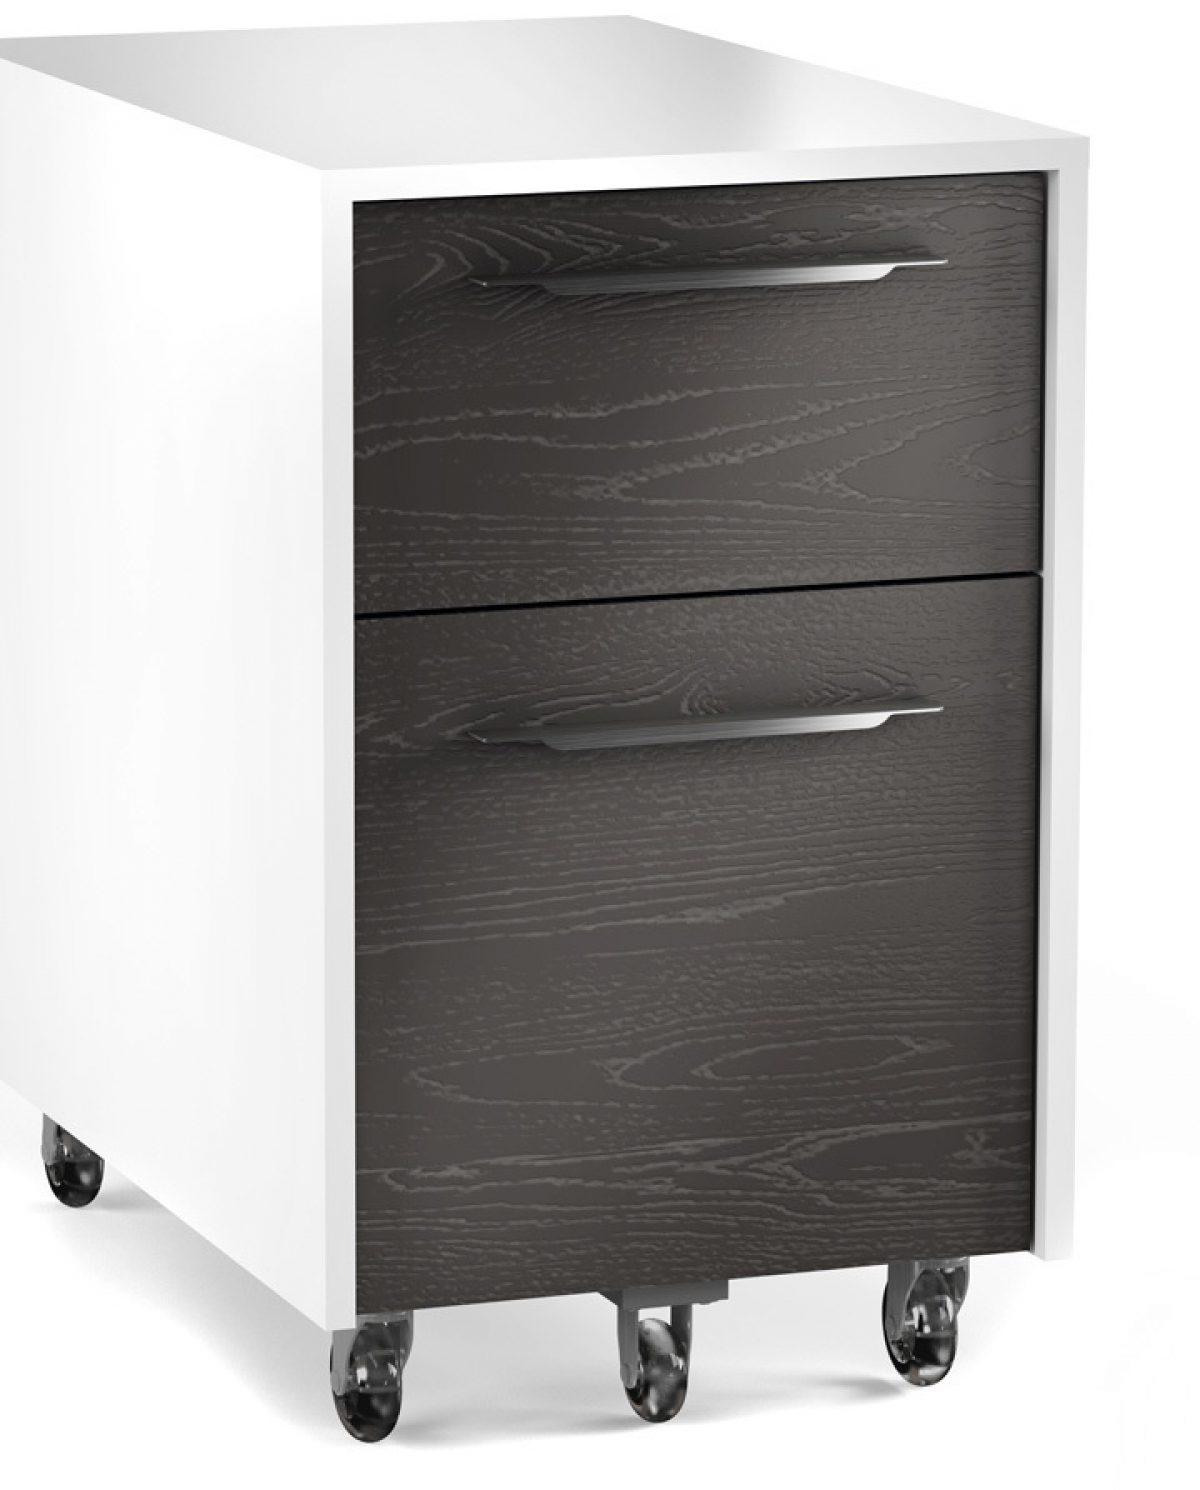 The Format Mobile File Pedestal in charcoal by BDI two drawers for office storage